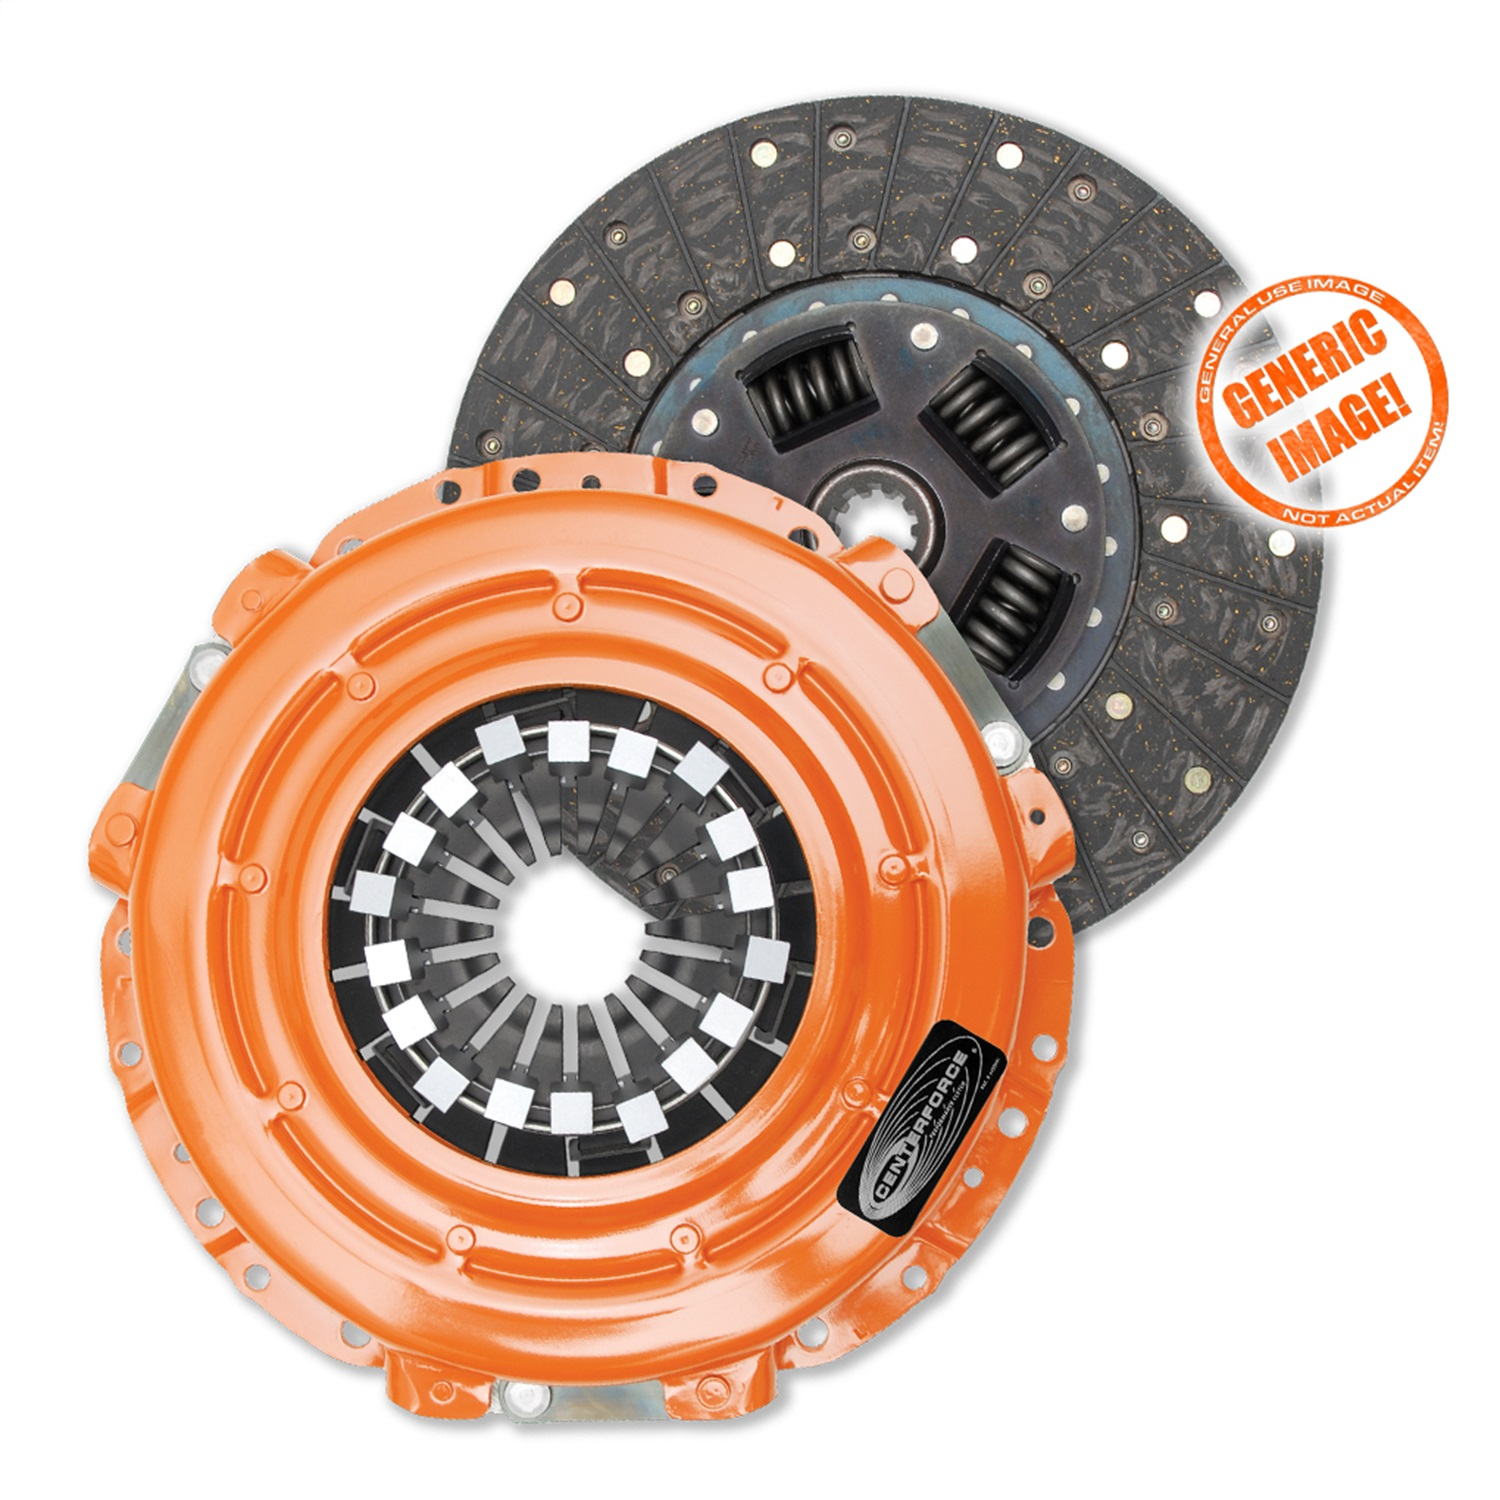 Centerforce CFT583402 Centerforce II Clutch Pressure Plate and Disc